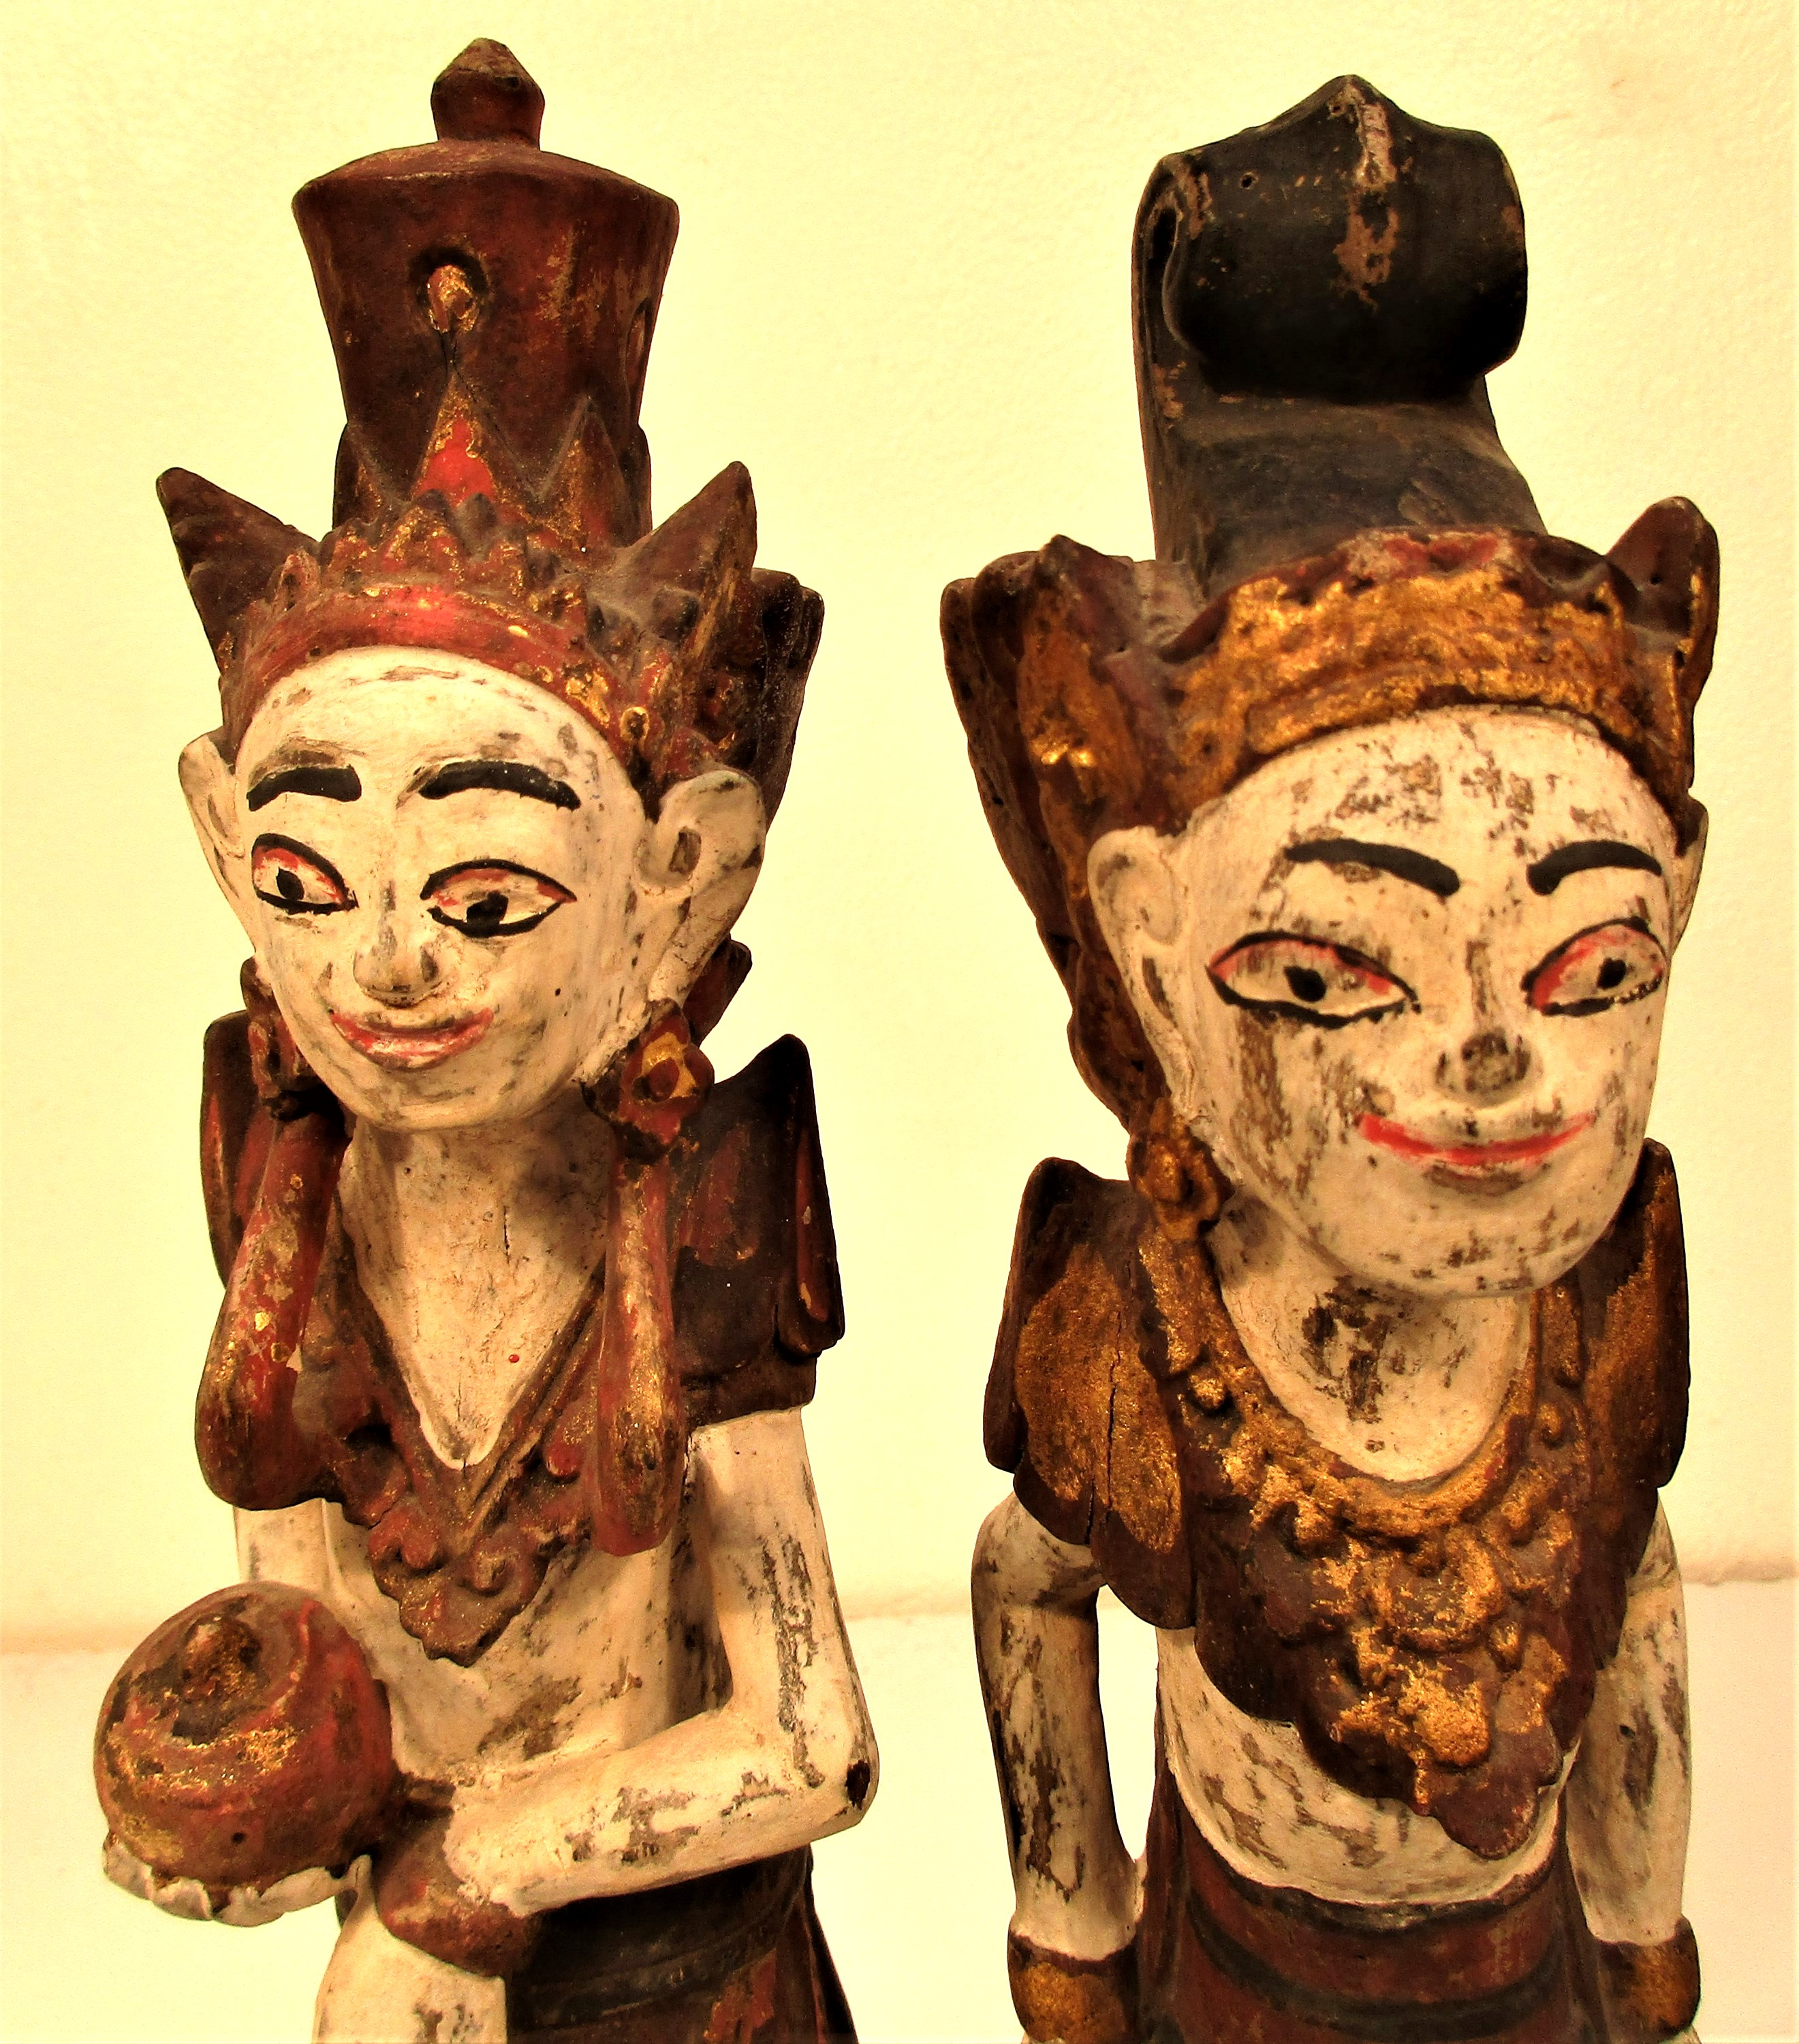 Wedding couple statues from east Bali. They are carved wearing tradition costumes and head dress, - Image 4 of 4